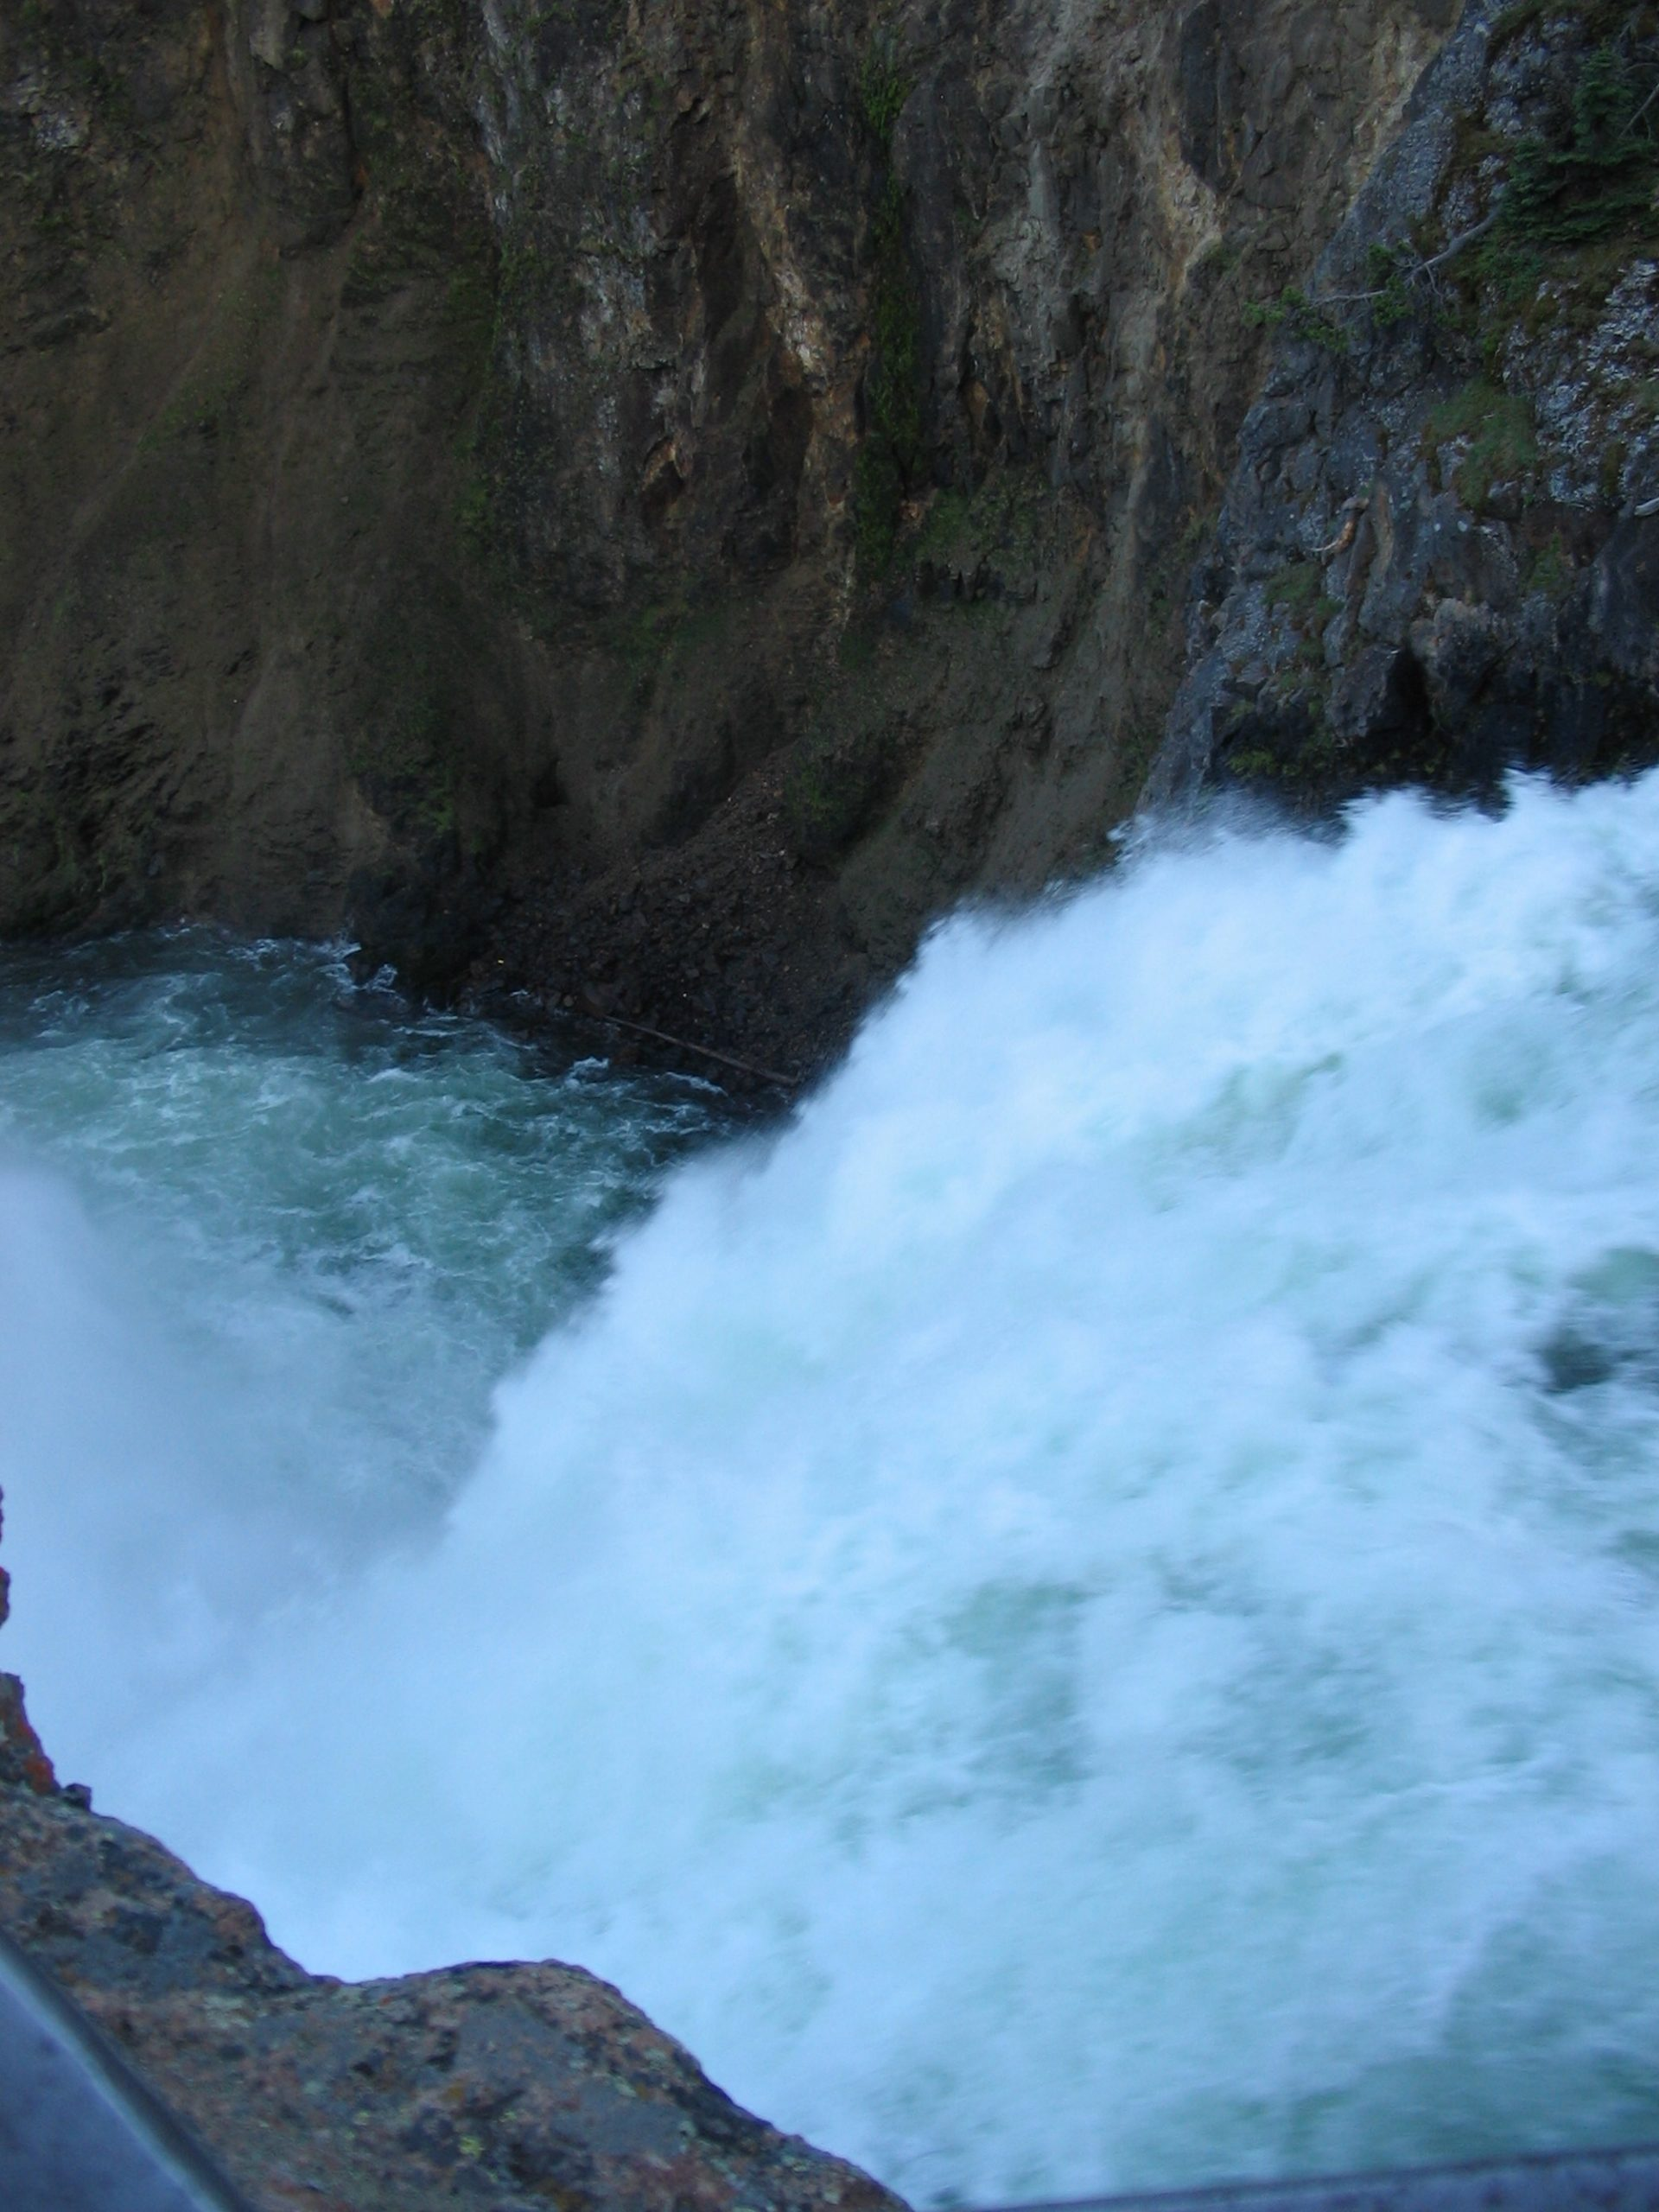 Top of Lower Falls waterfall going over the edge